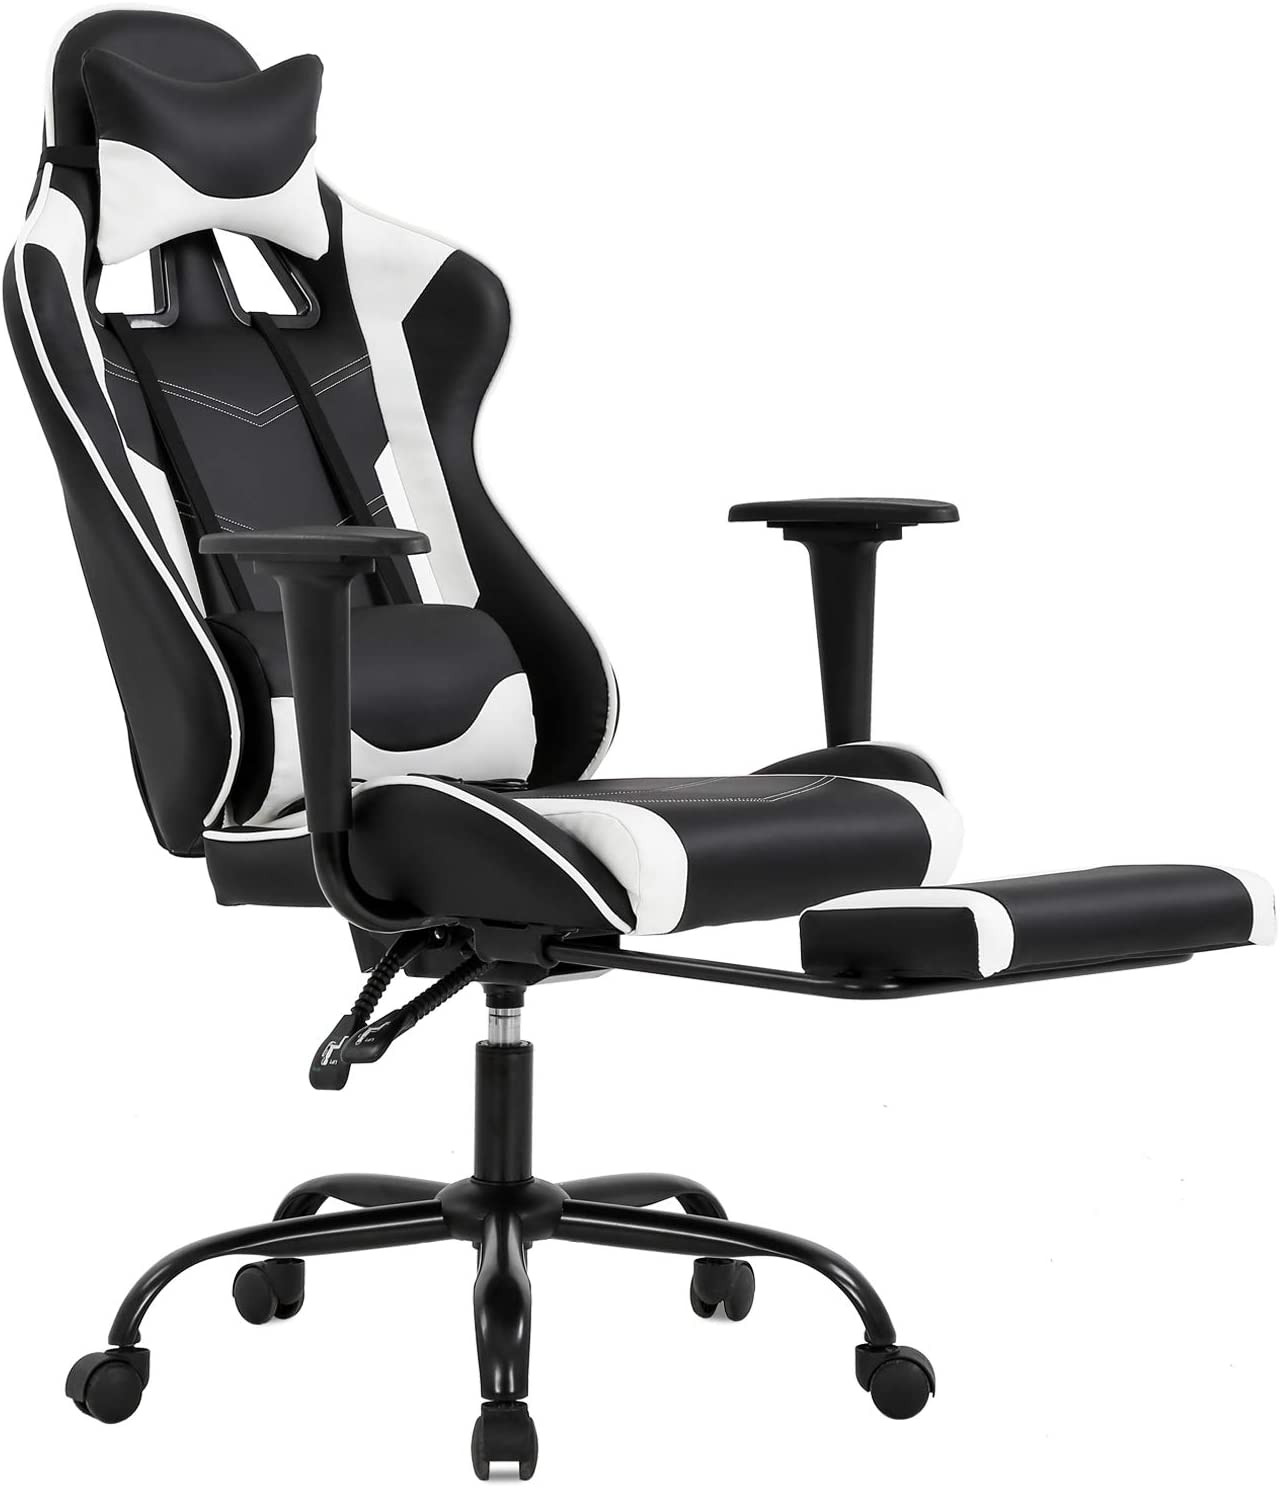 Top 10 Best Gaming Chair Black Friday 2020 Deals - Max Discount 15